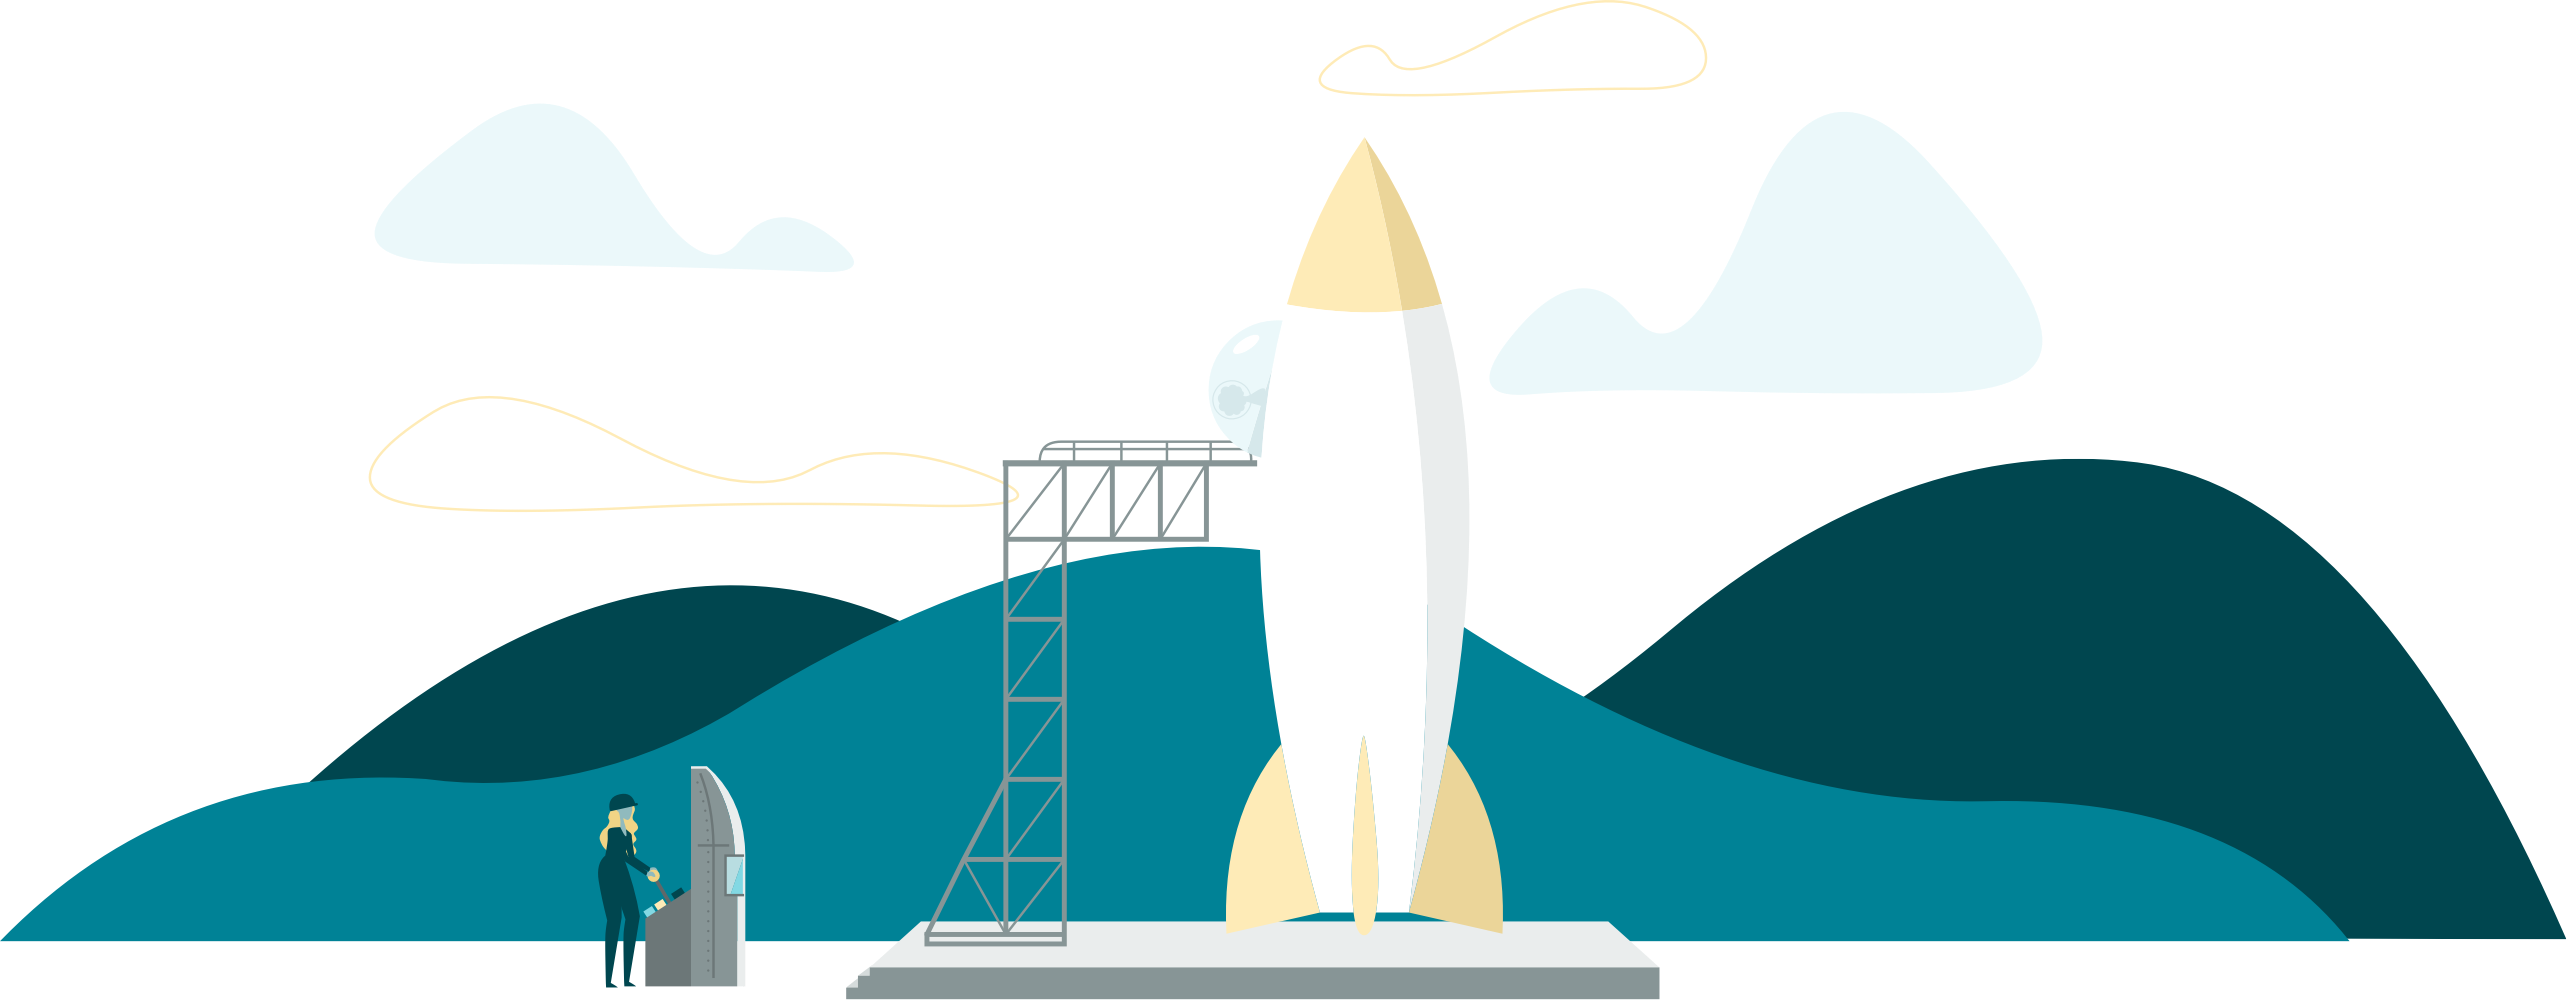 Illustration of a rocket about to launch